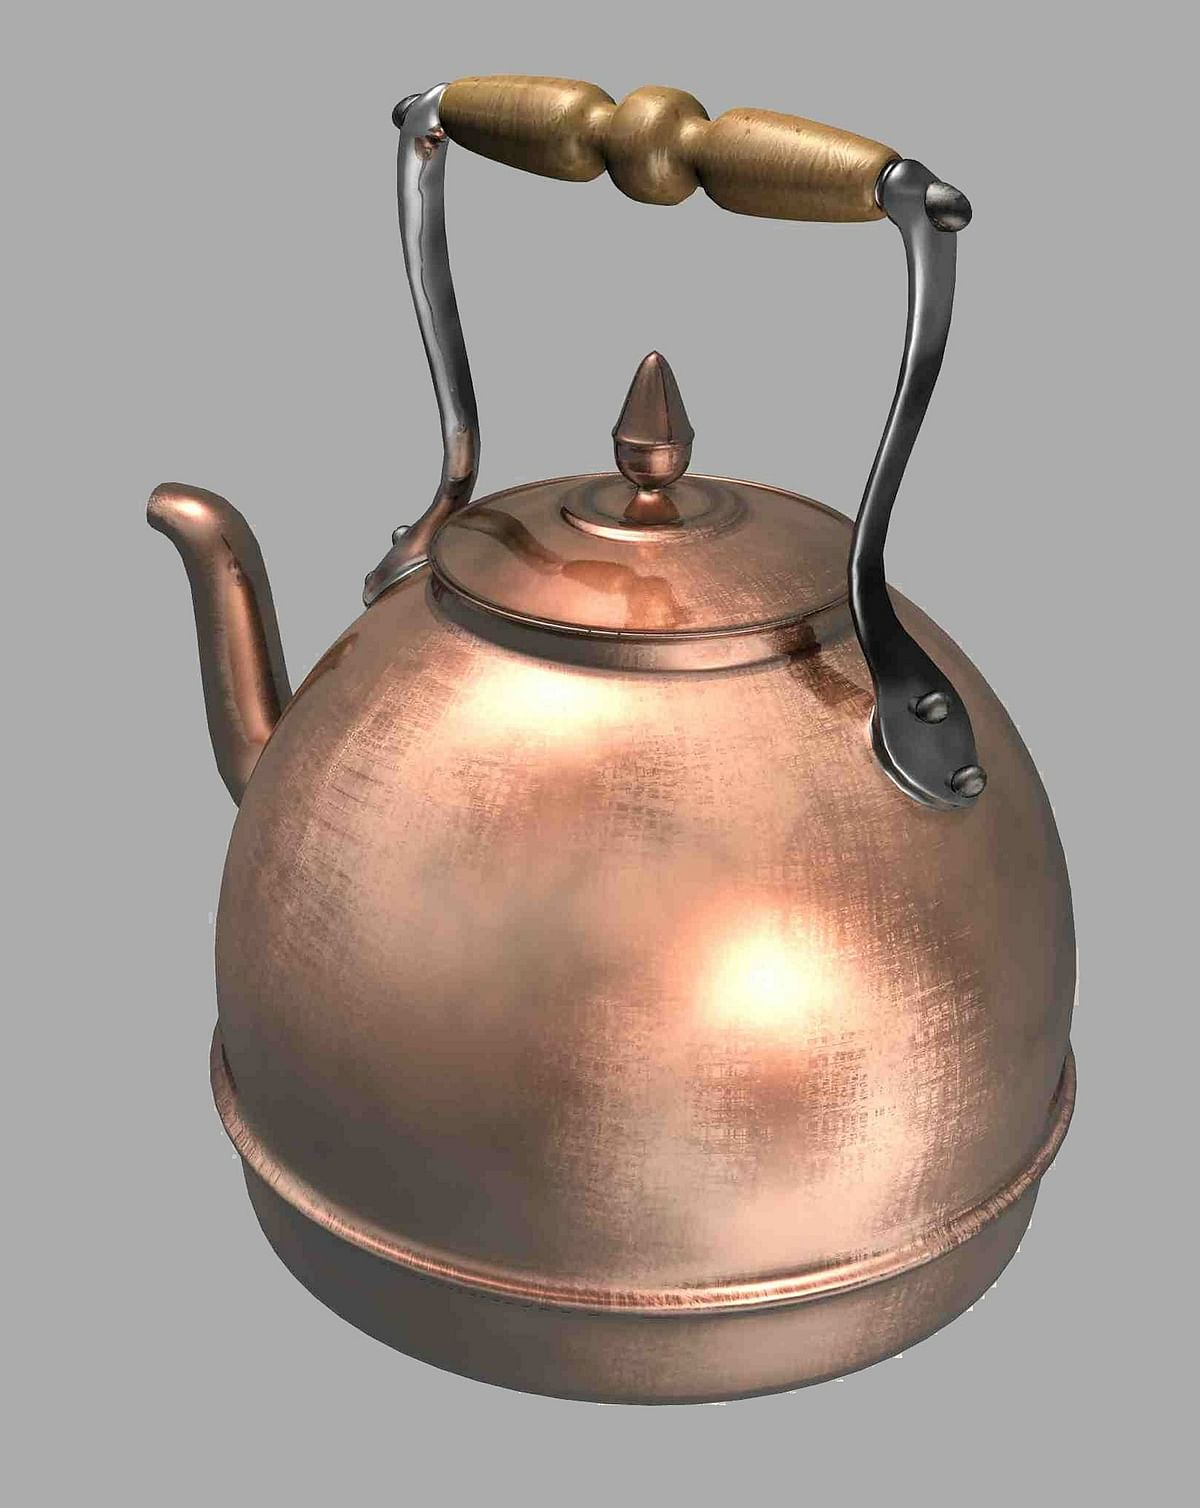 Drinking water from a copper glass can keep water-borne diseases at bay.